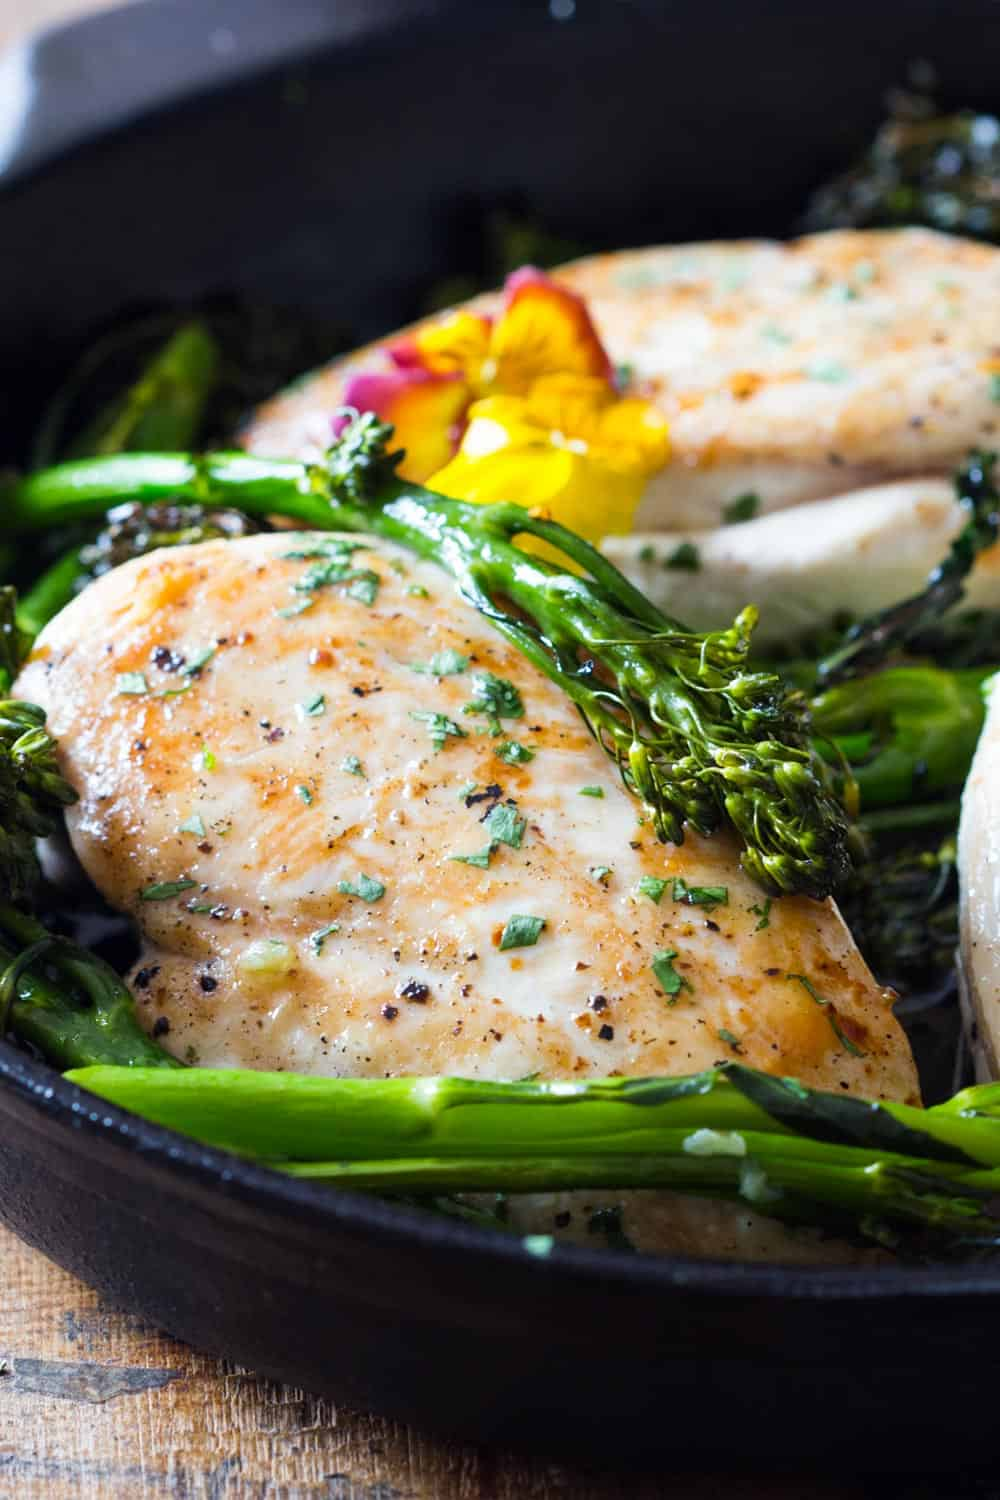 Cooked chicken breast with broccolini on a plate